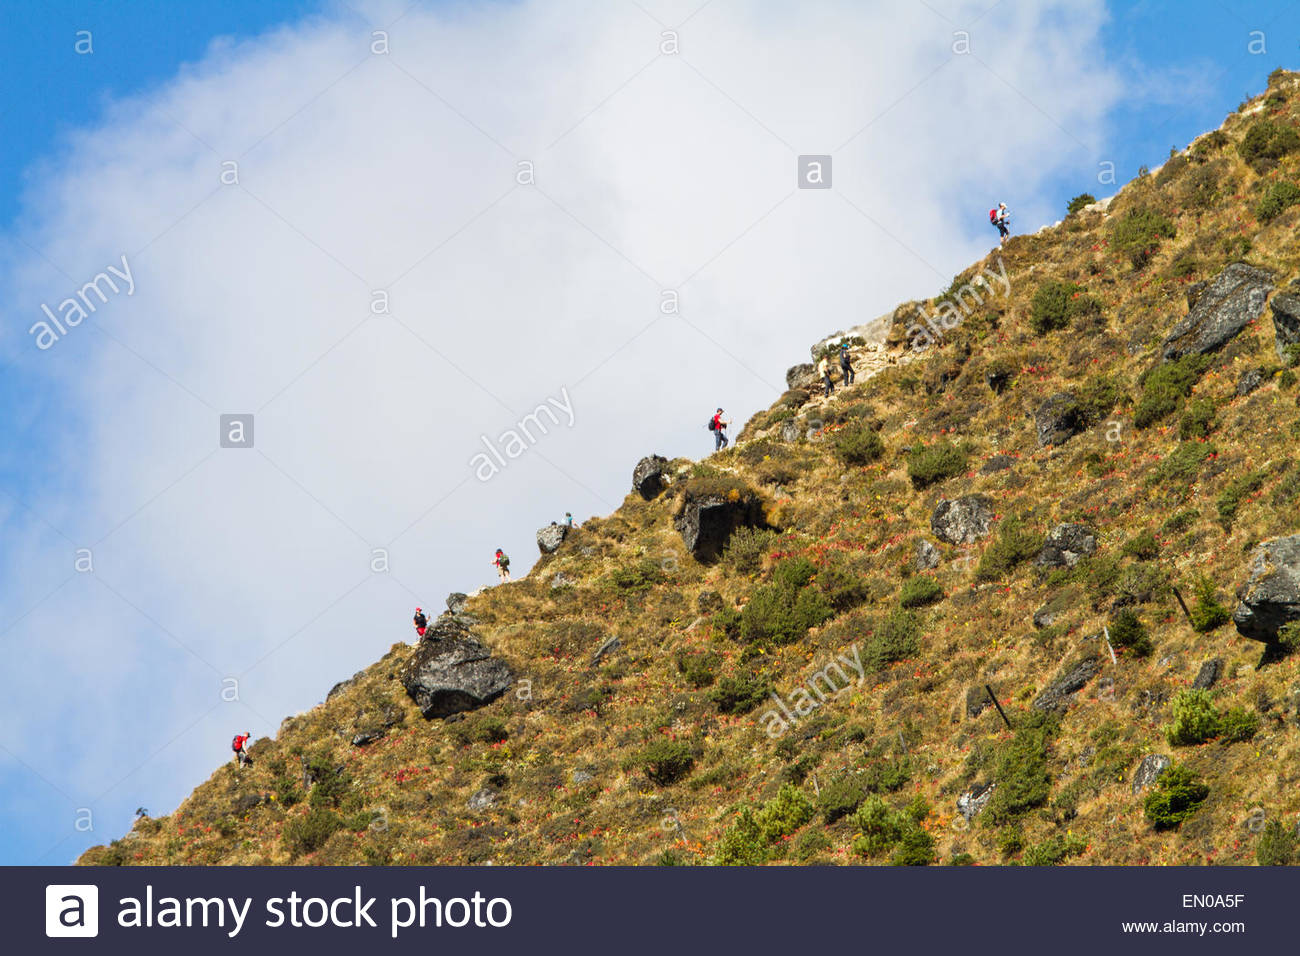 Trekkers in Nepal's Himalayas are seen along an uphill ridgeline against a sky of blue and a large white cloud - Stock Image